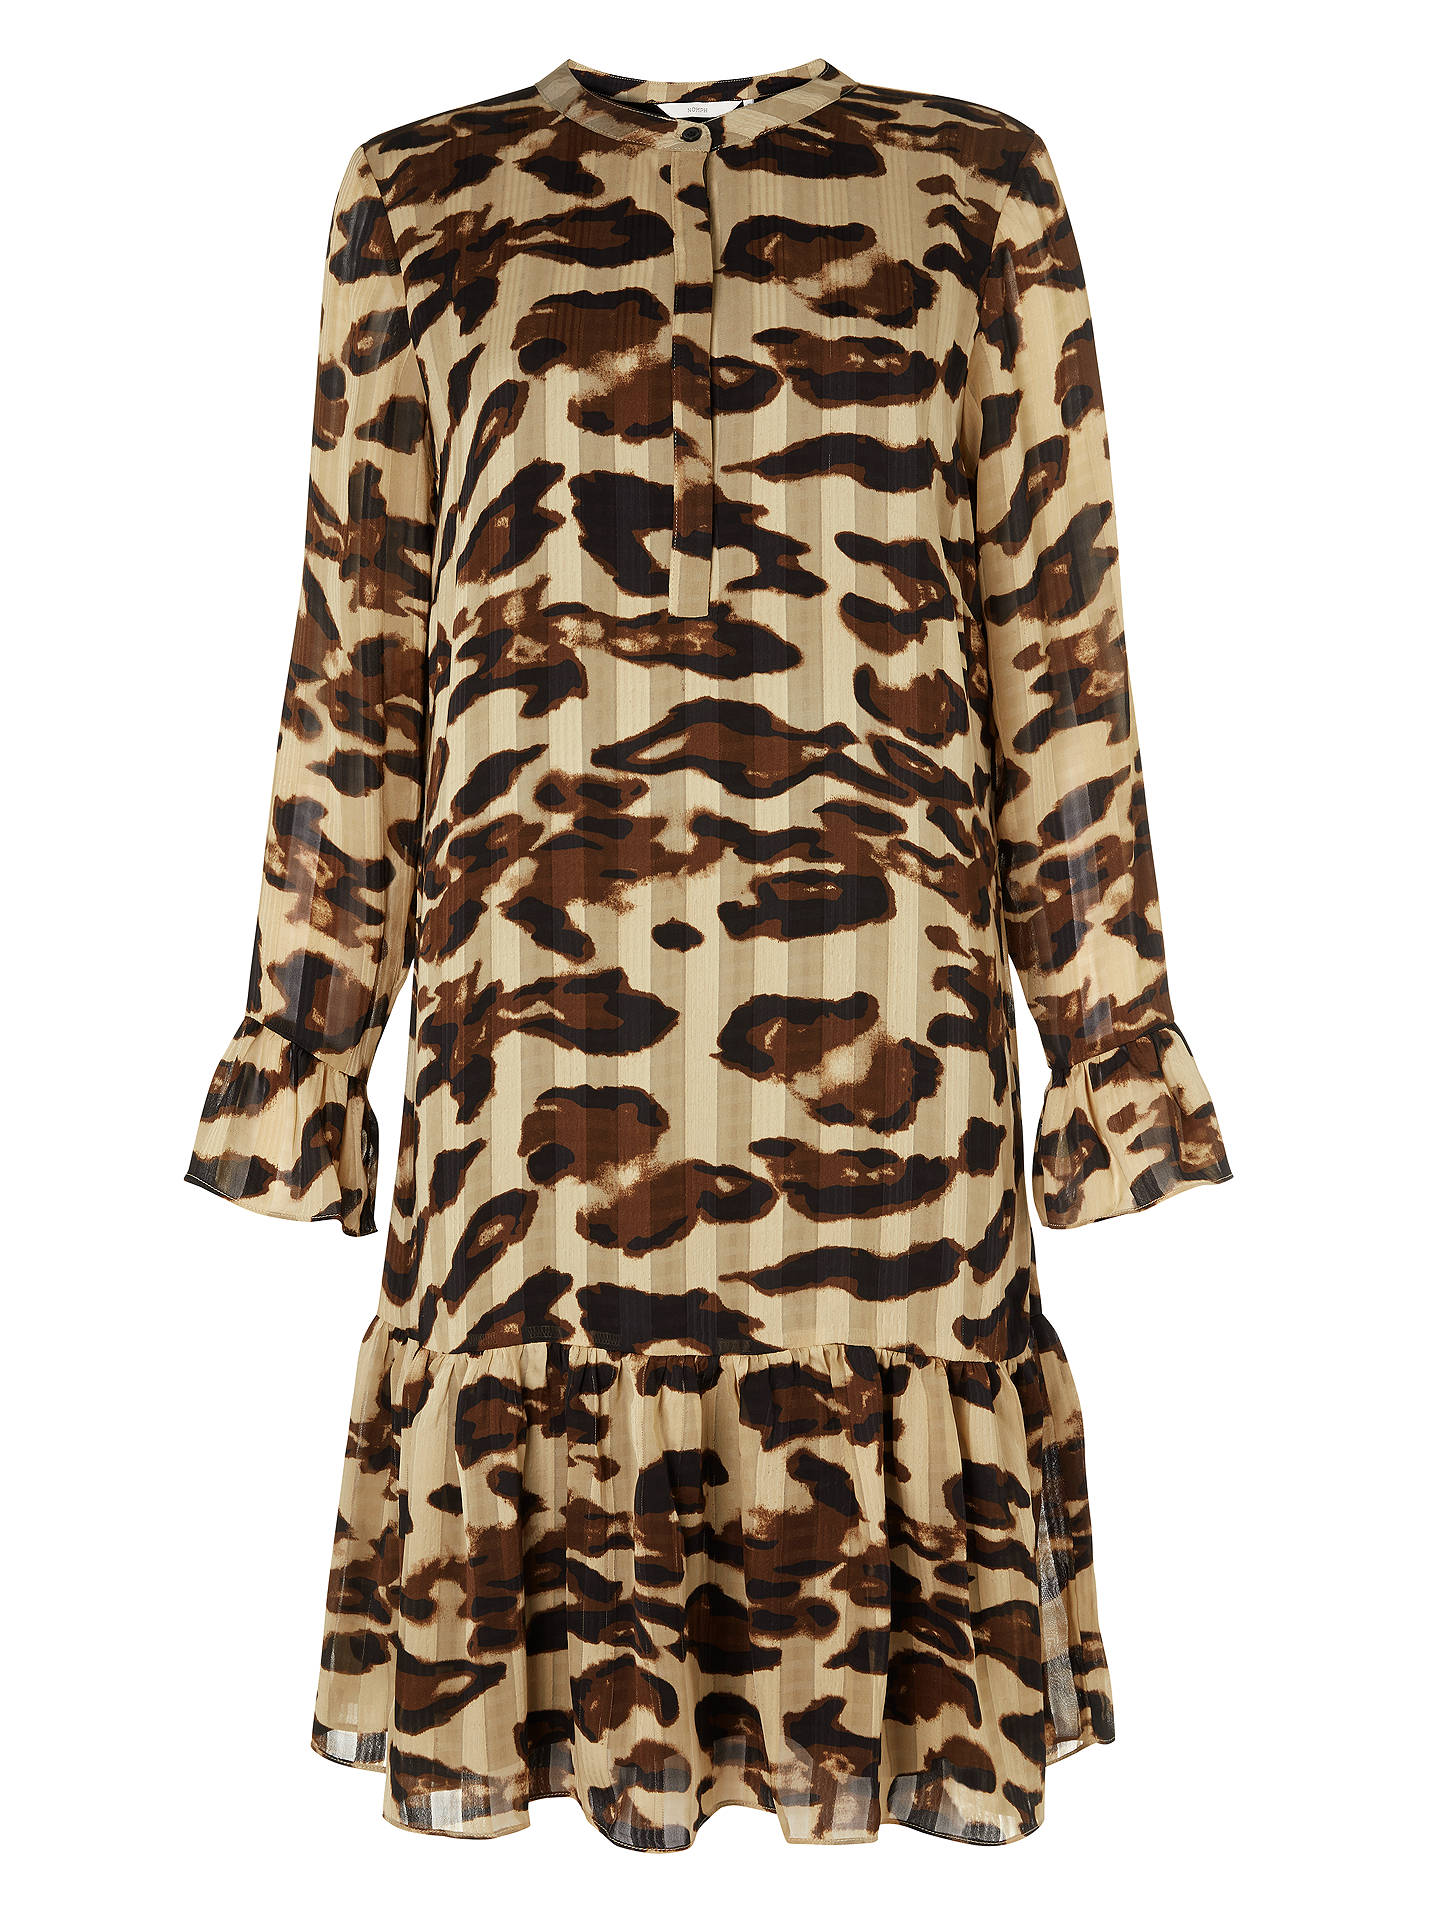 John Dropped Frostine Sand At Print Waist Leopard Numph Dress Warm z6qnTSxw